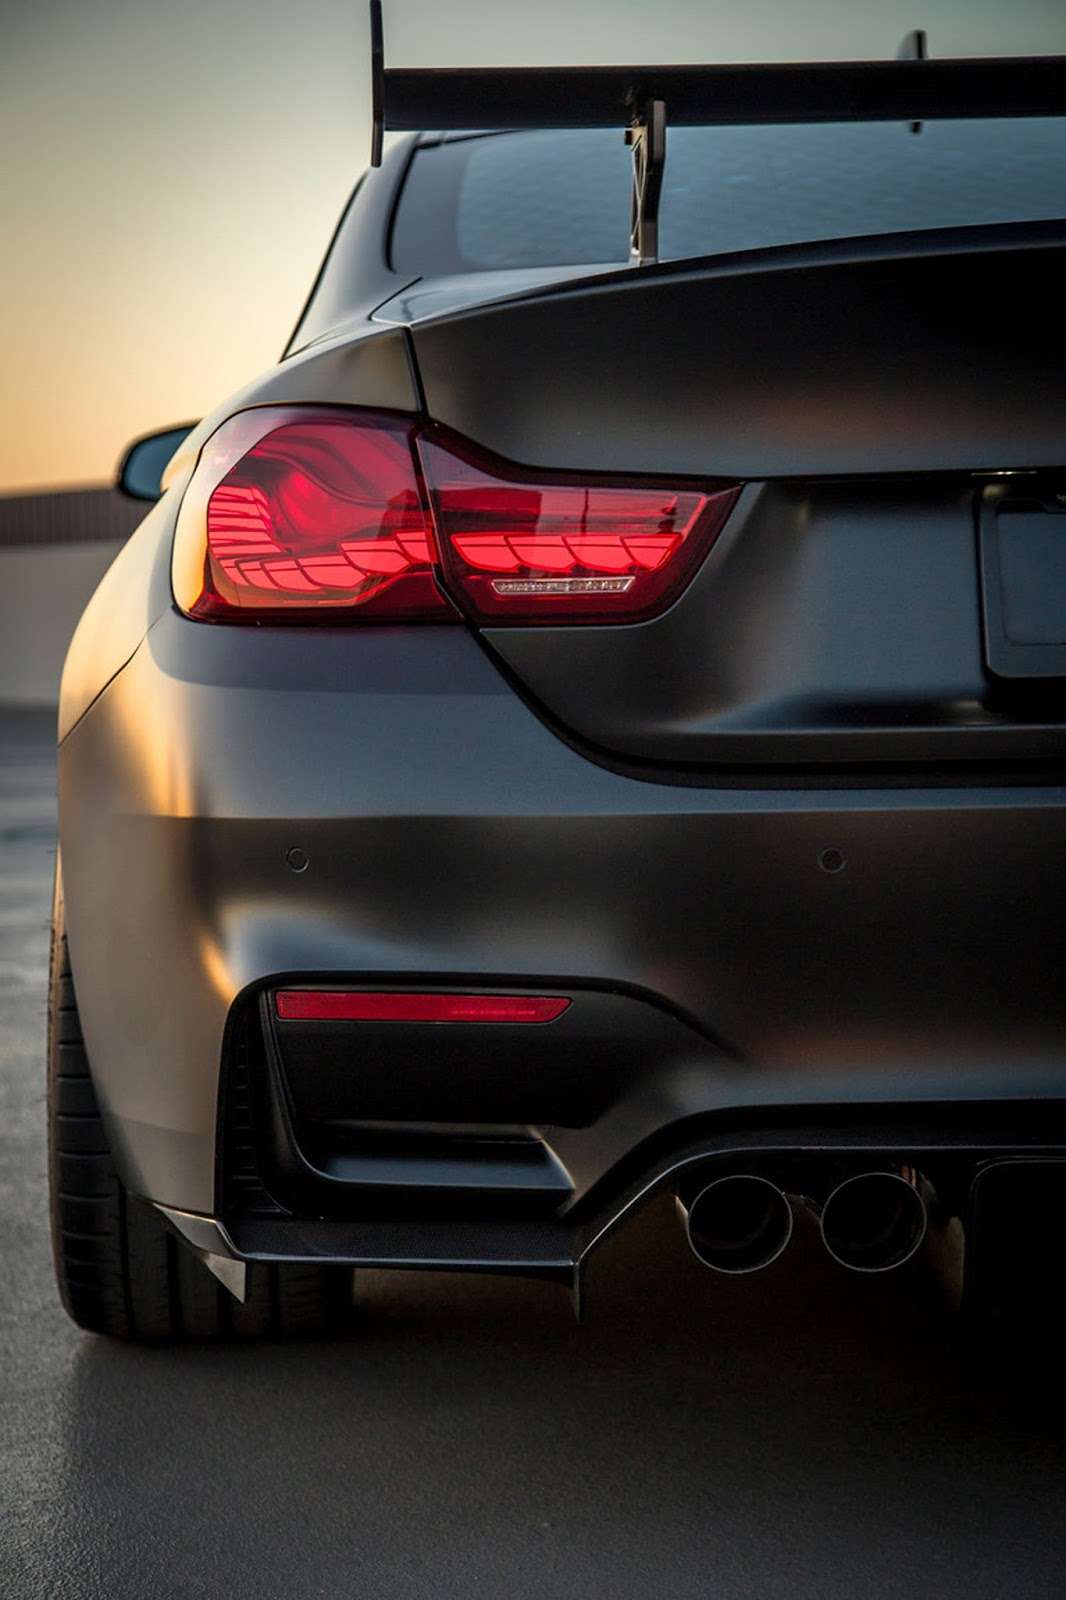 BMW M4 0 60 >> BMW M4 GTS Looks Sinister On Carbon-Graphite Wheels   Carscoops